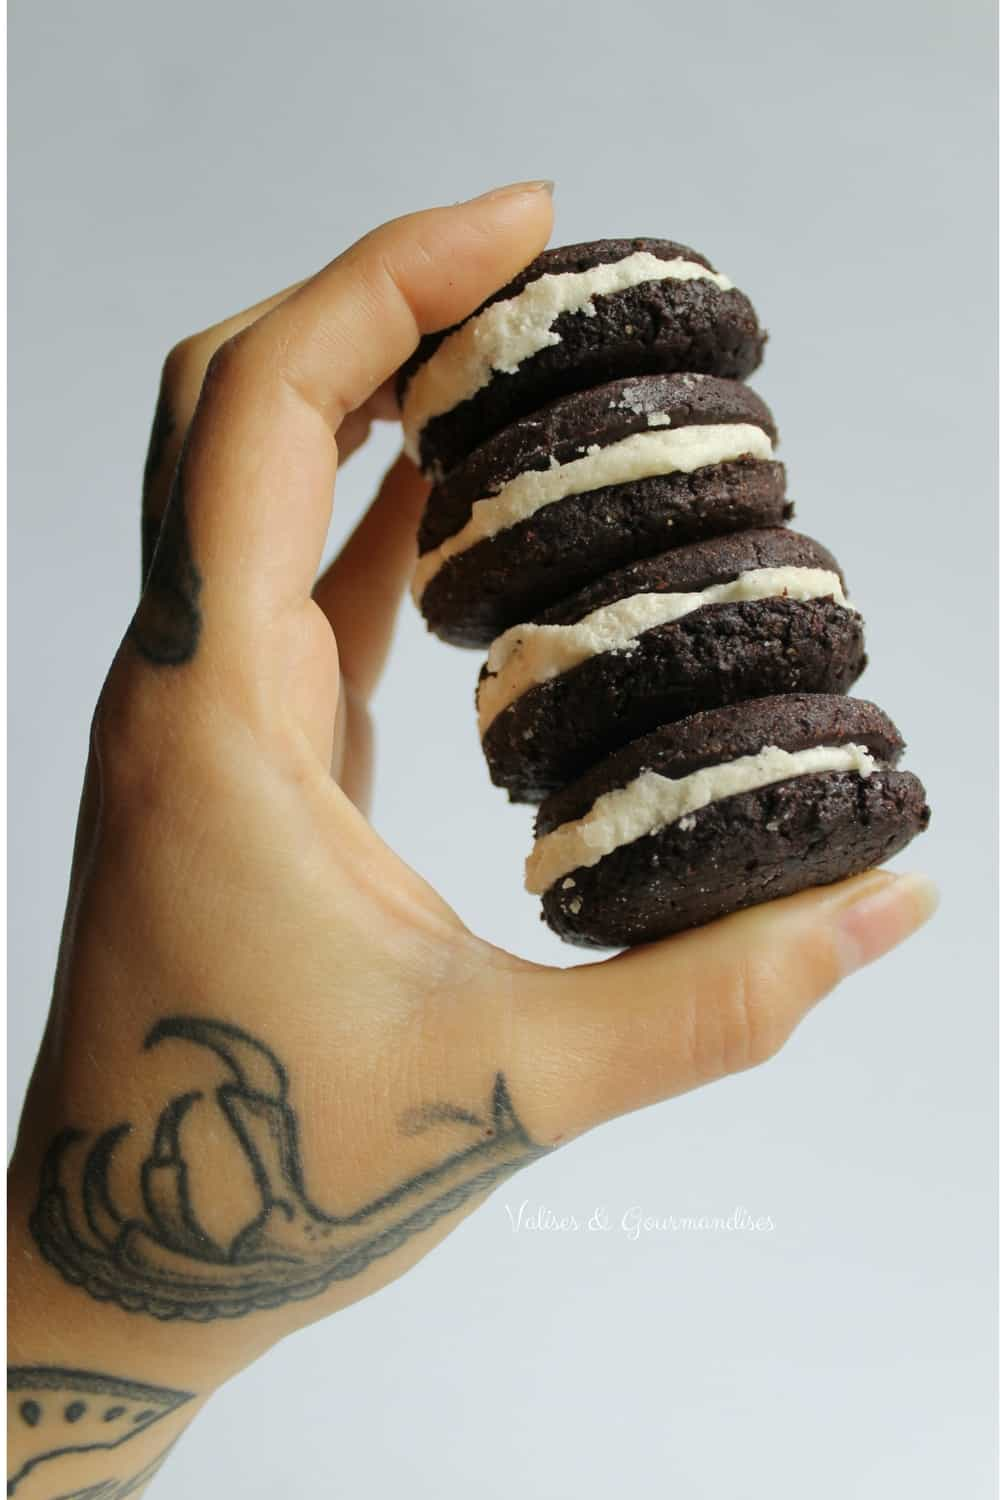 Delicious homemade vegan oreos, Valises & Gourmandises